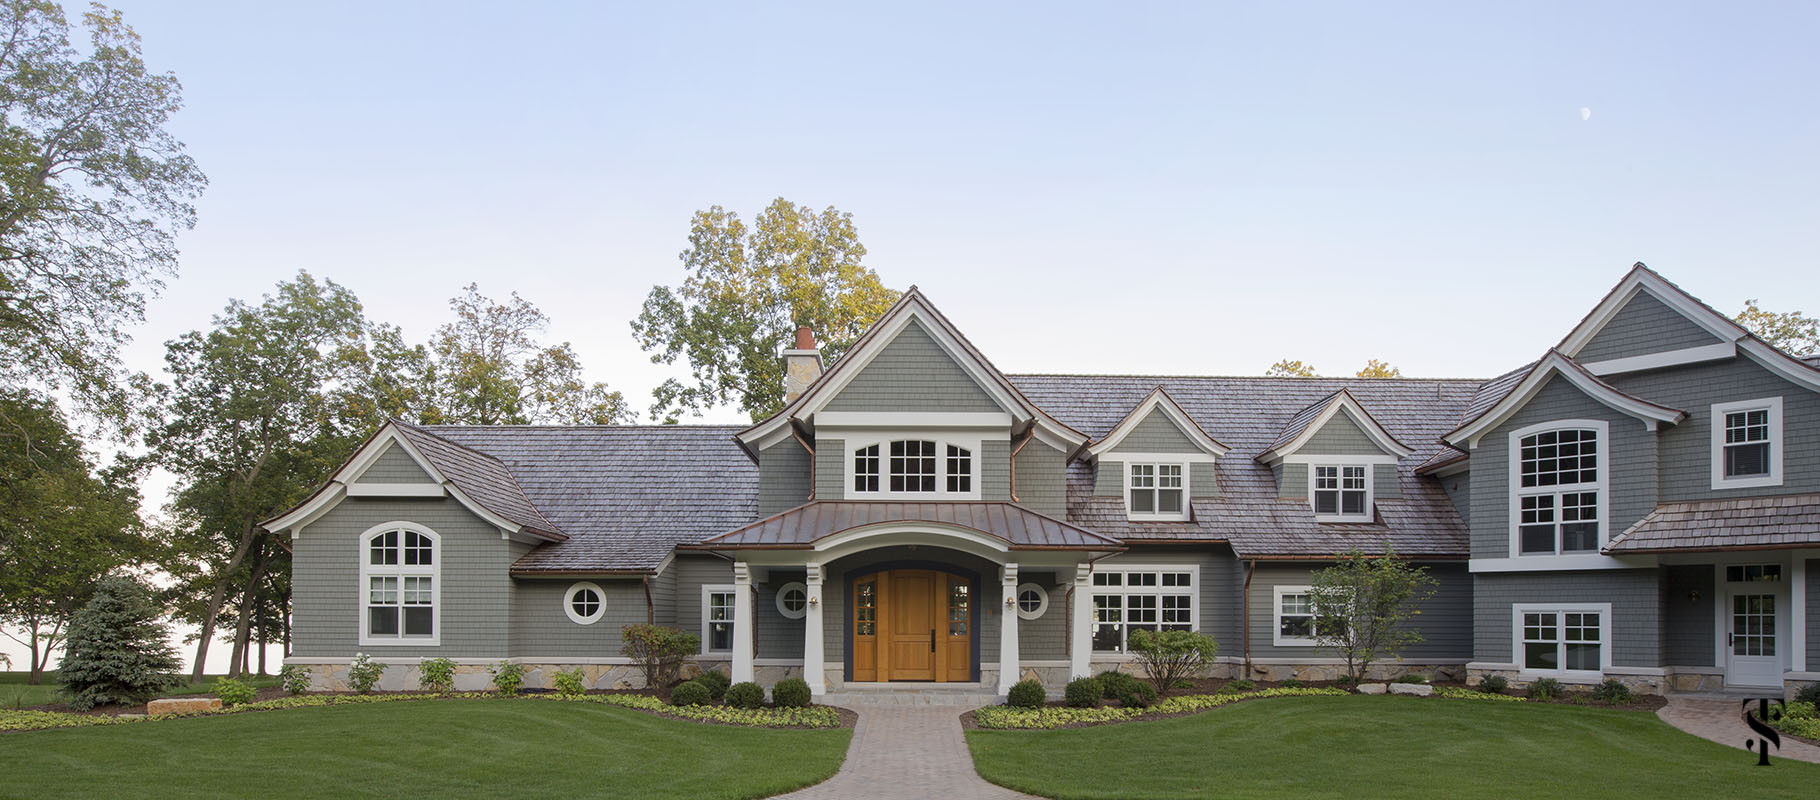 wisconsin lakefront home; interior design by summer thornton www.summerthorntondesign.com; architecture by McCormack + Etten